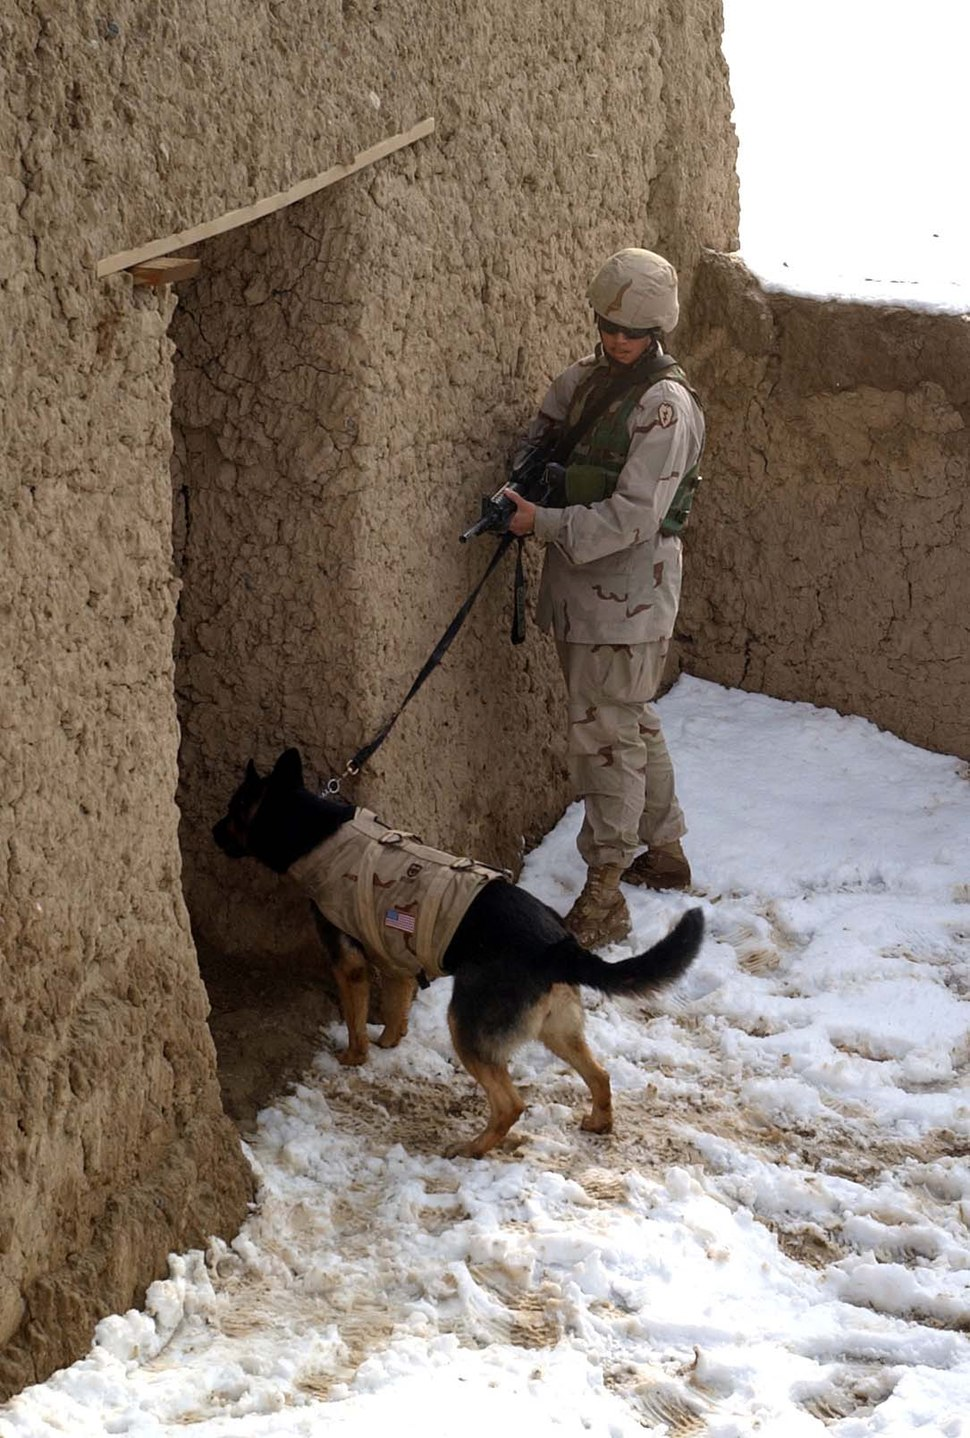 Working dog in Afghanistan, wearing a bulletproof vest, clears a building